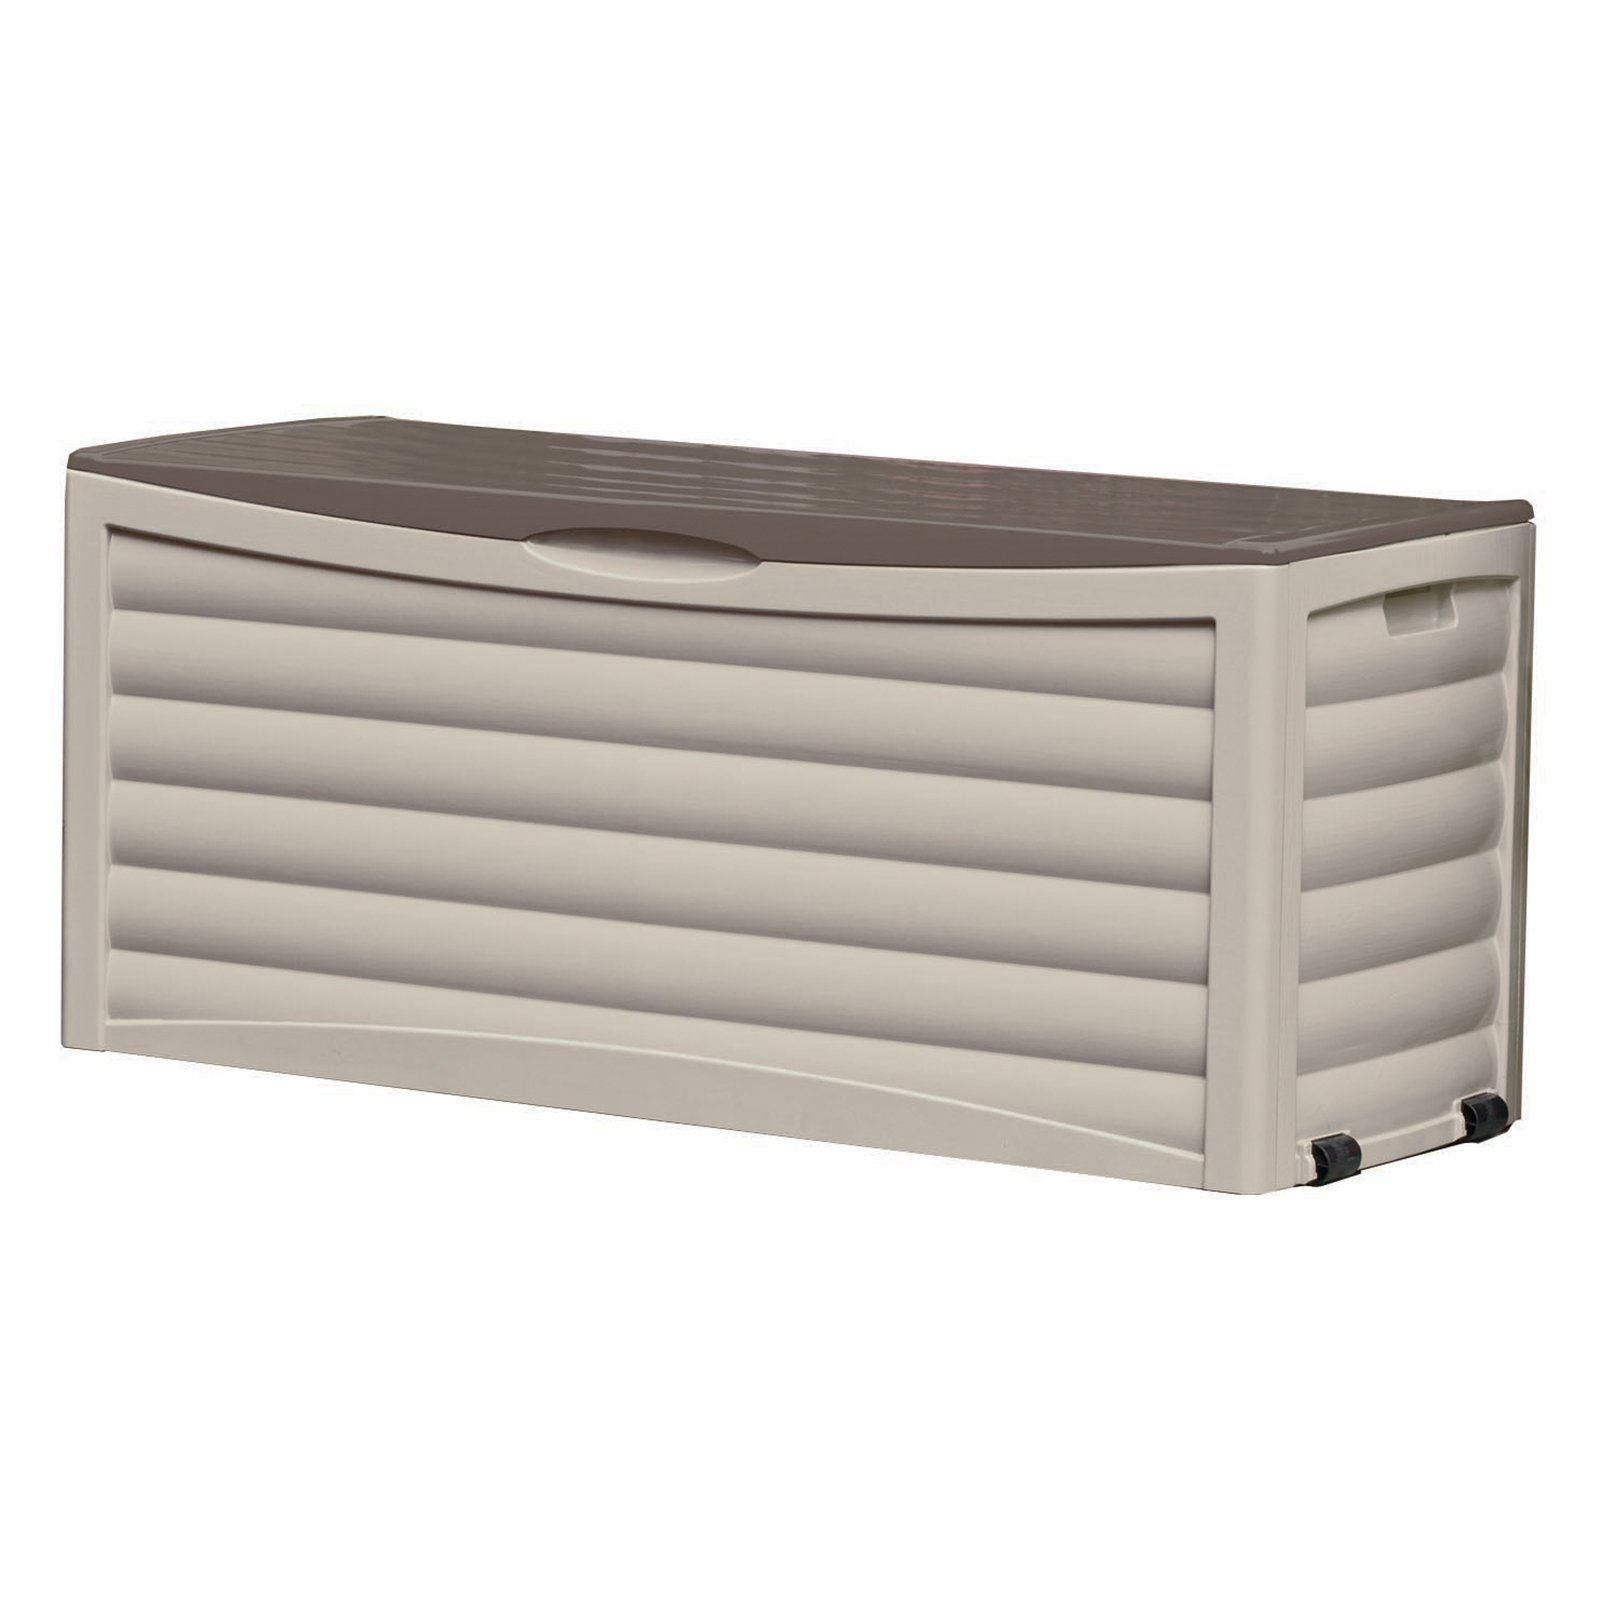 Suncast 103 Gallon Deck Box, Light Taupe, DB10300